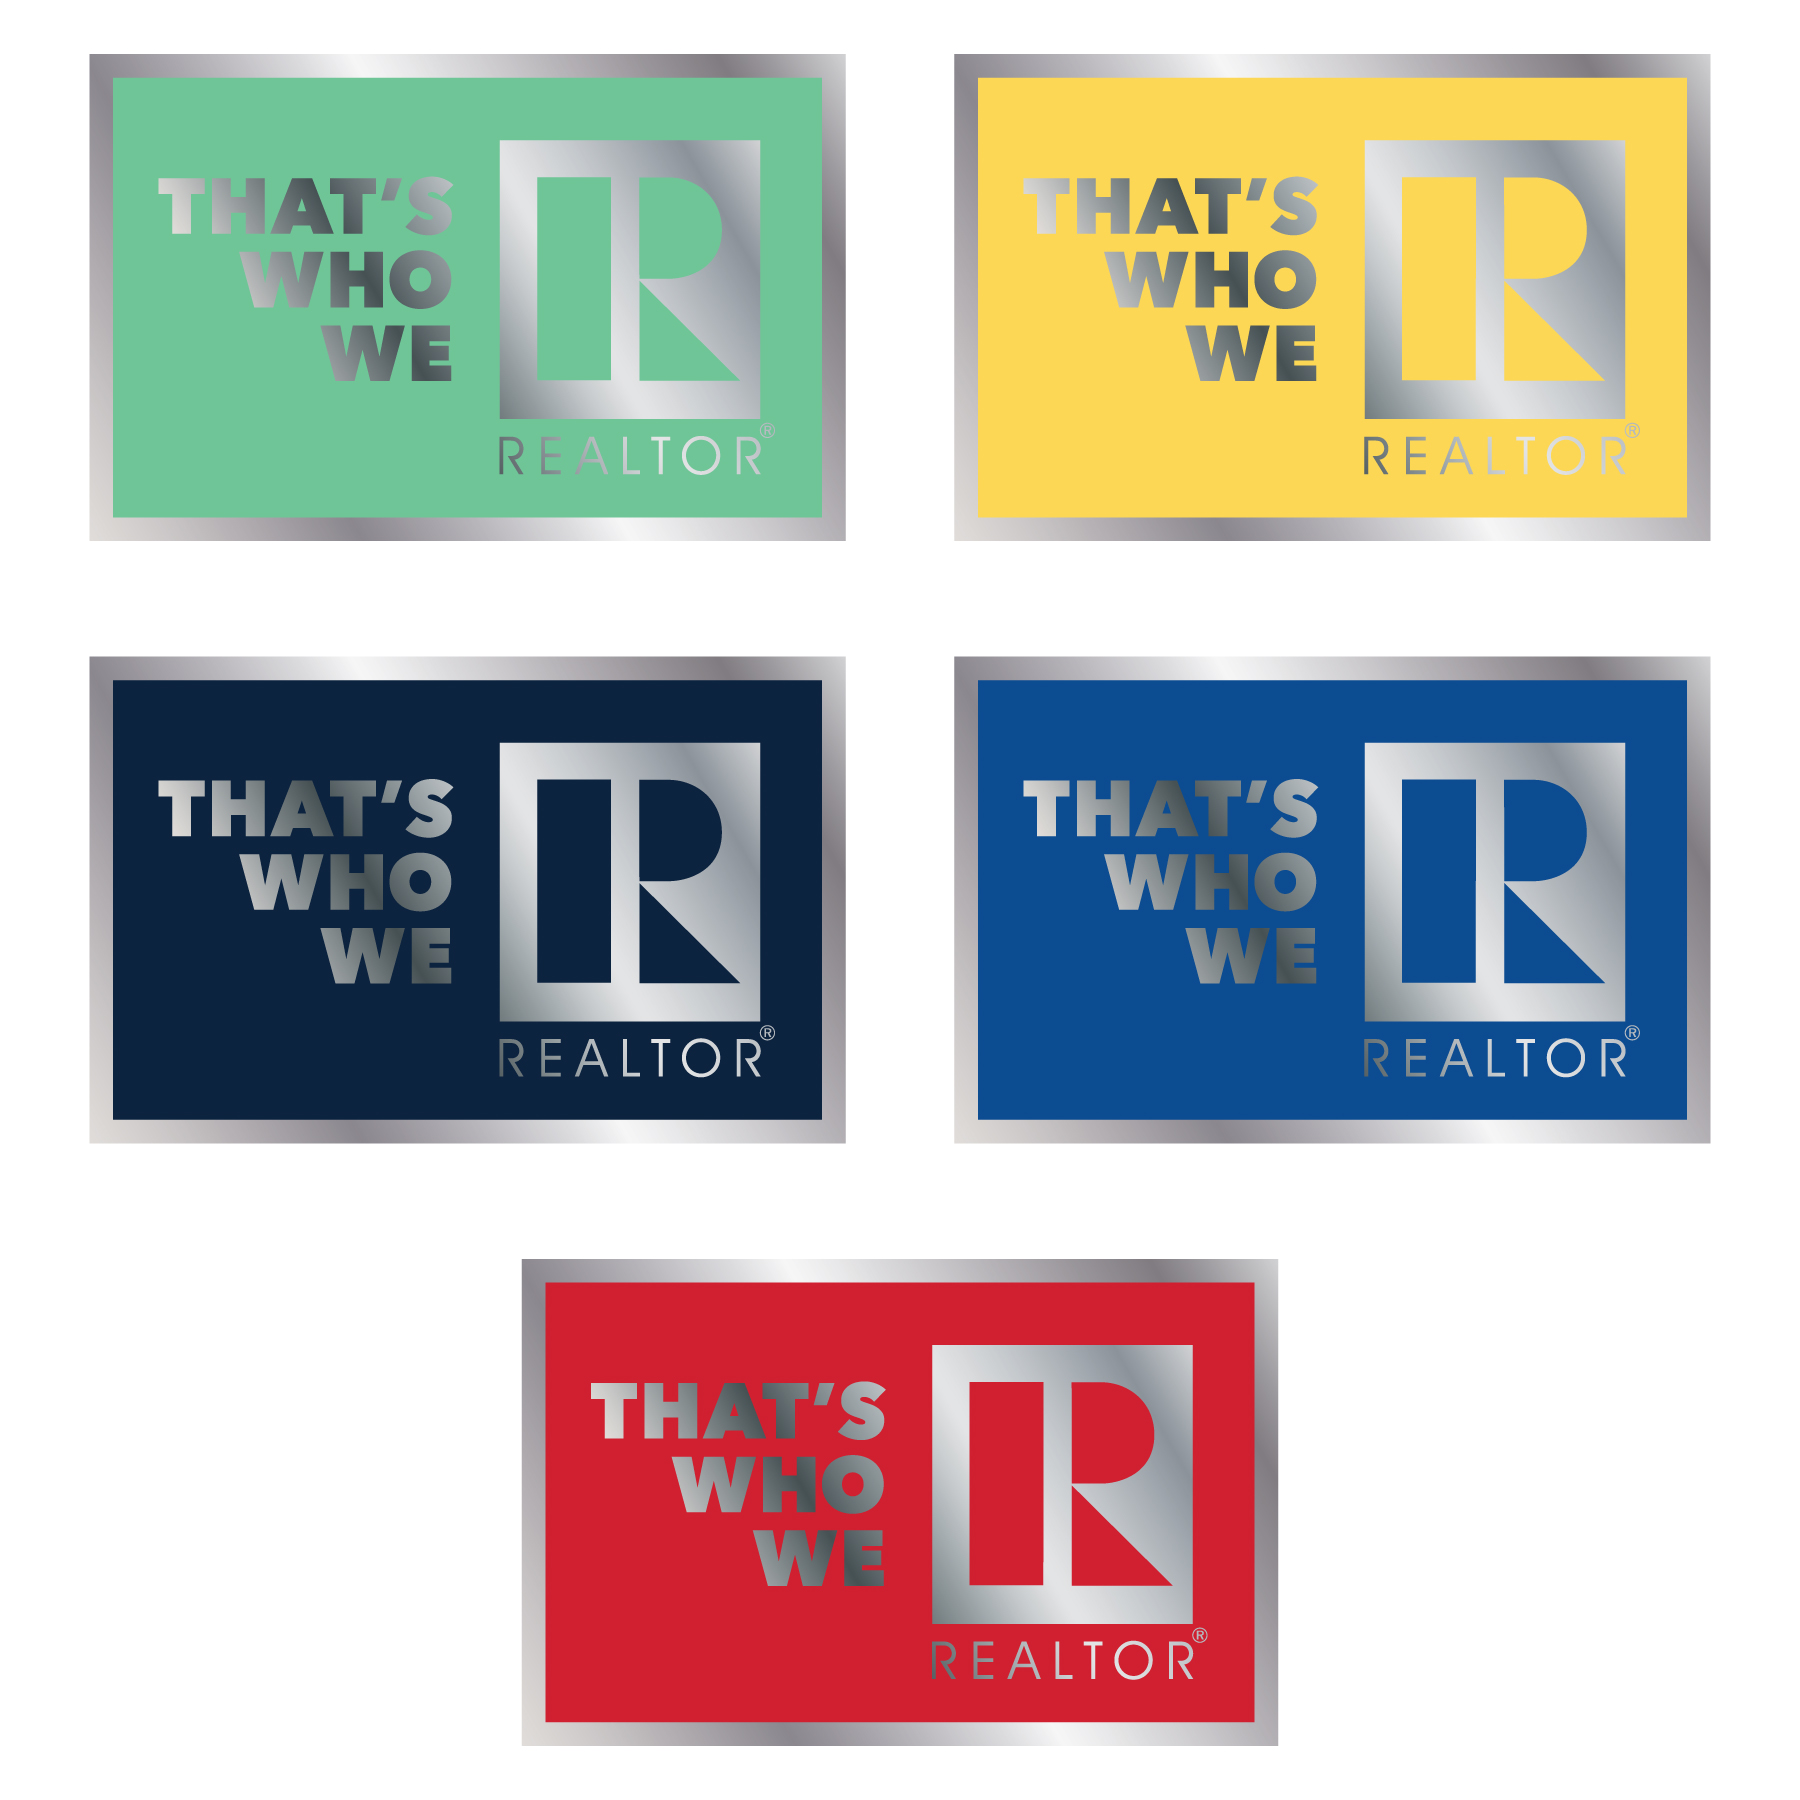 """Thats Who We R"" Lapel Pin twwr,ThatsWhoWeR,Thats,TWWR,ThatWho,ThatsWho,Pins,Lapels,Rs,Magnets"